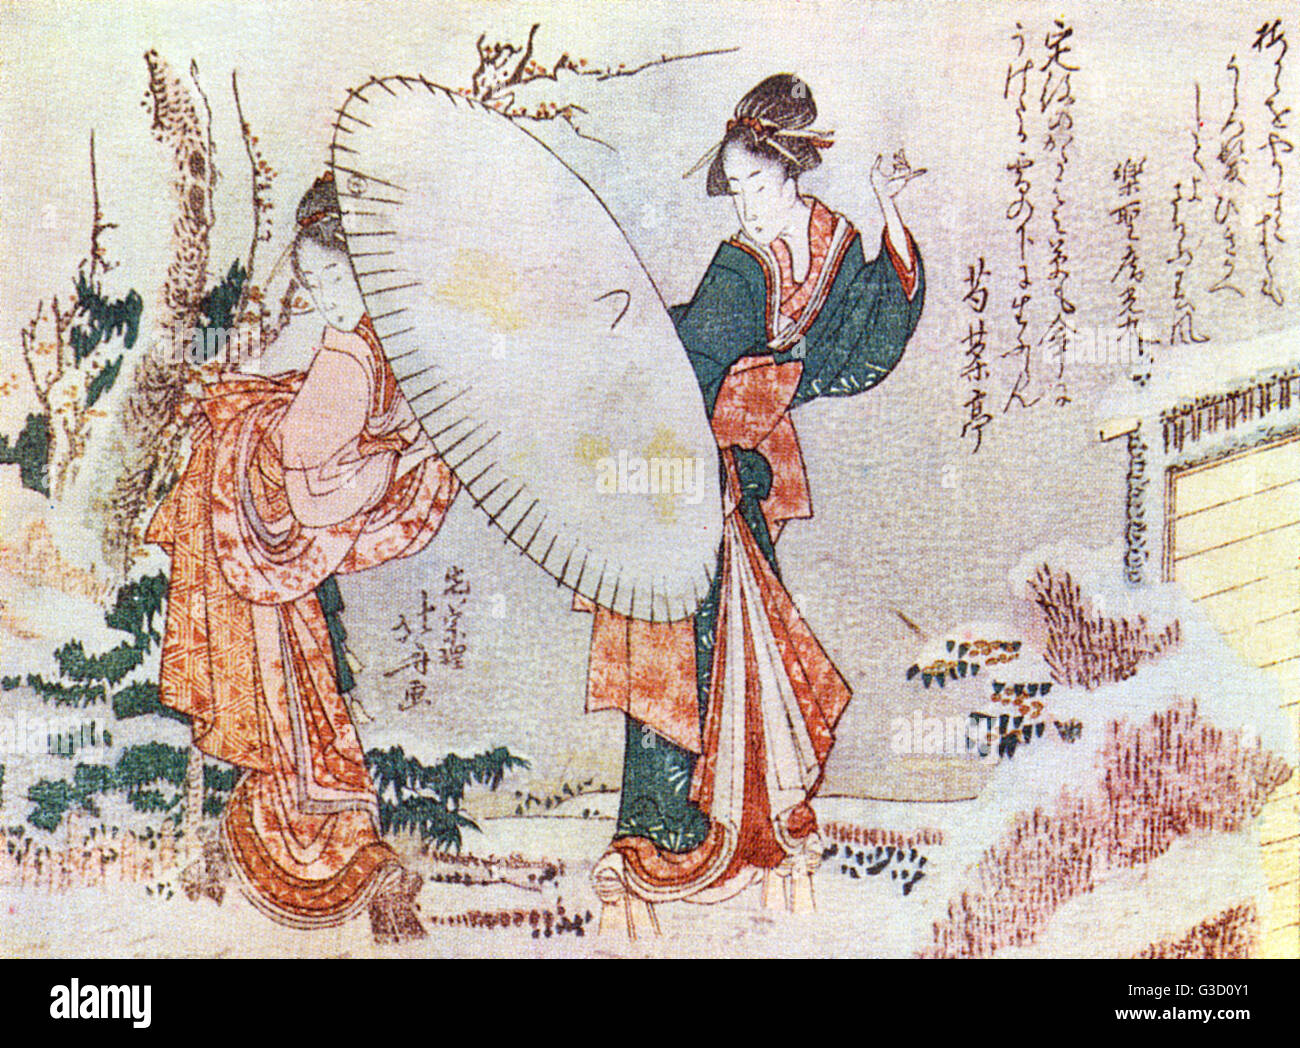 Reproduction of a woodcut by Katsushika Hokusai (1760 - 1849) entitled: 'Girl walking in the snow'     Date: - Stock Image